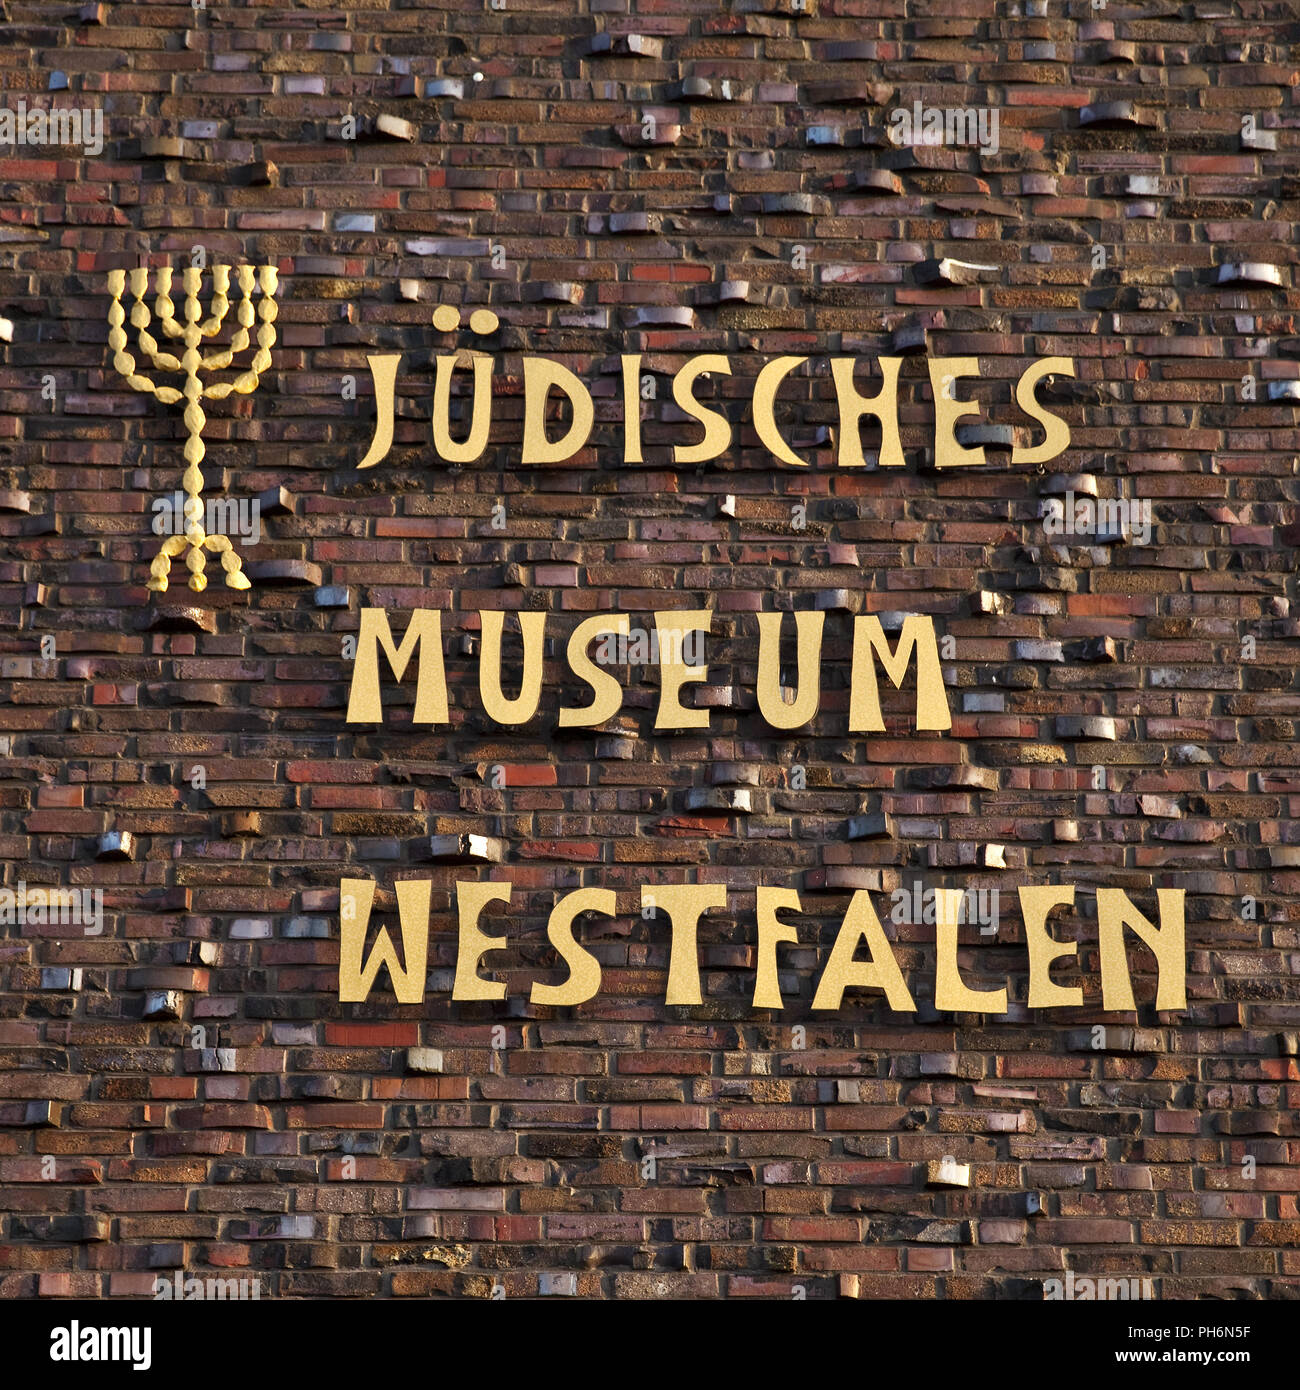 Jewish Museum of Westphalia, in Dorsten, Germany - Stock Image